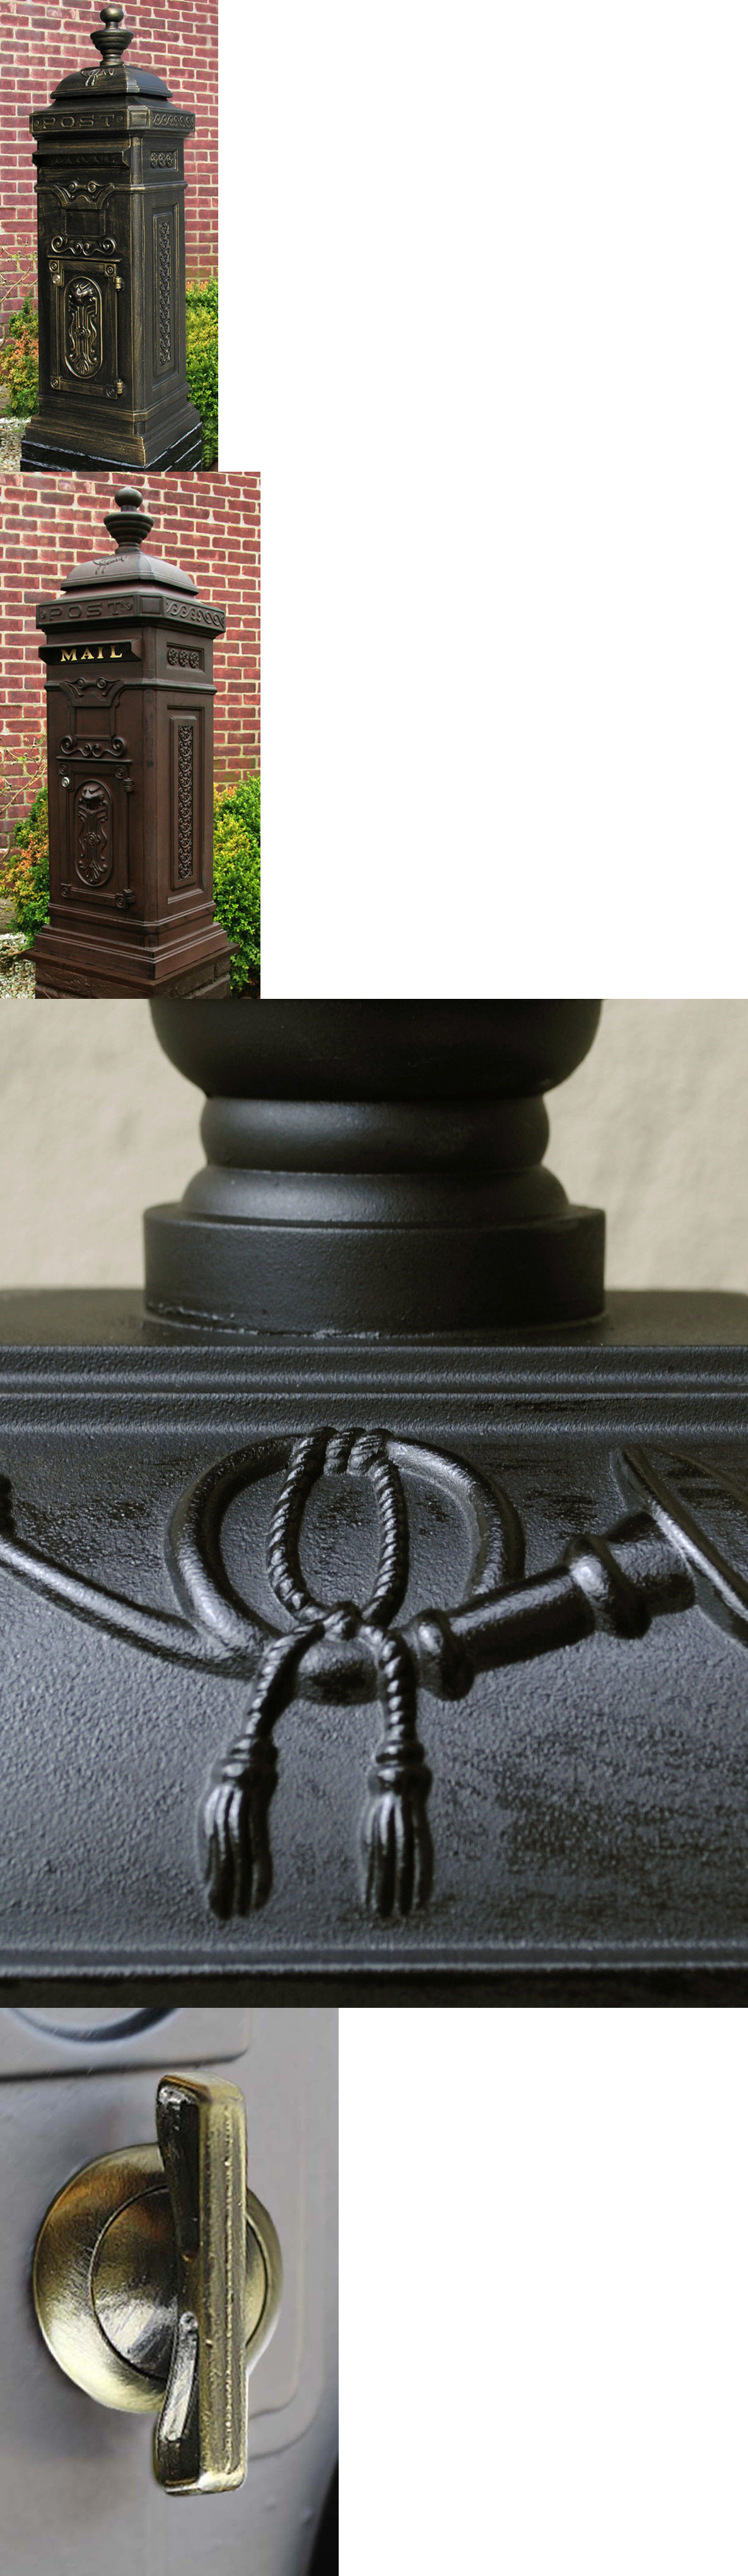 display fresh walnutcube pedestals victorian sculpture of jpg for inspirational mailbox pedestal wood laminate large finishes vs com